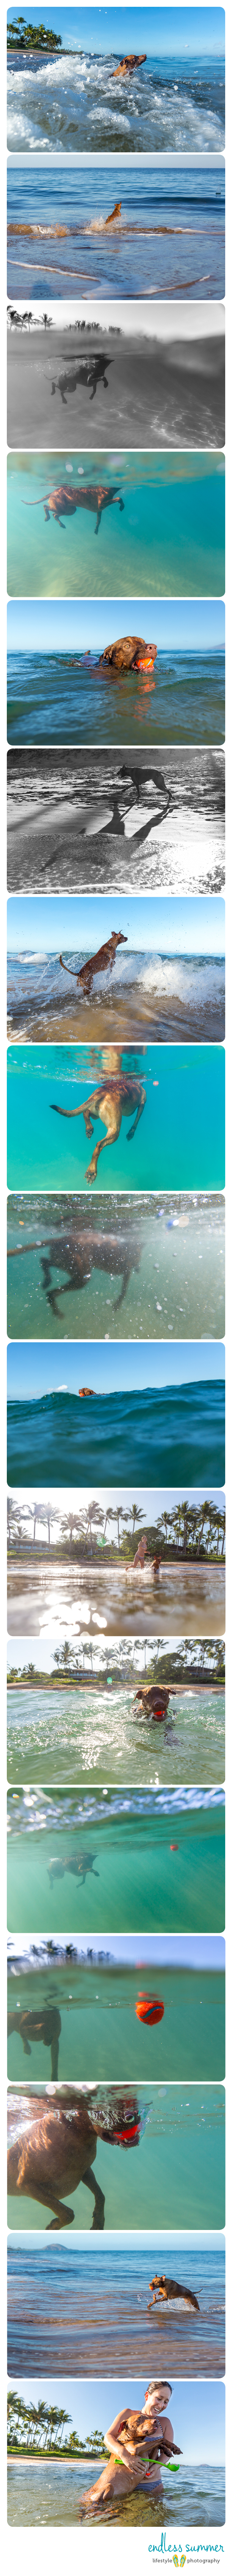 Hawaii Underwater Dog Photography